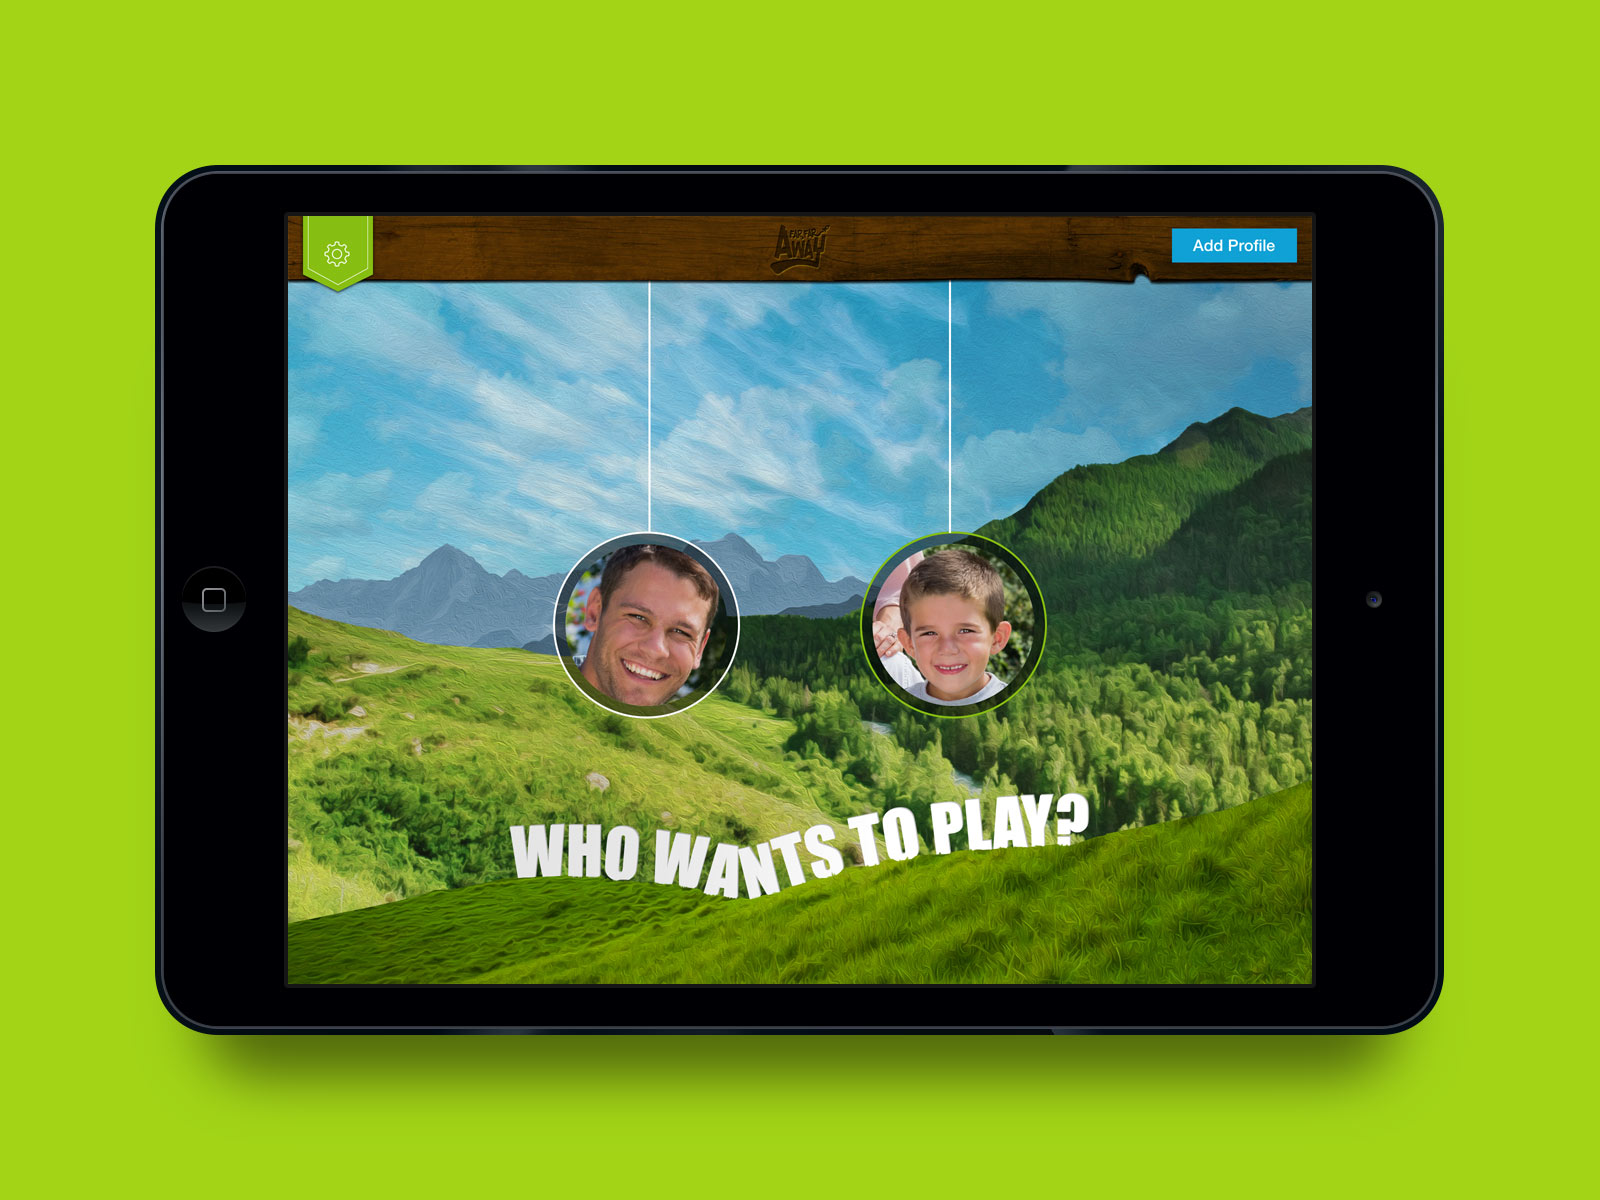 Far Far Away app on iPad. Interactive book and video chat. Multiple user accounts.